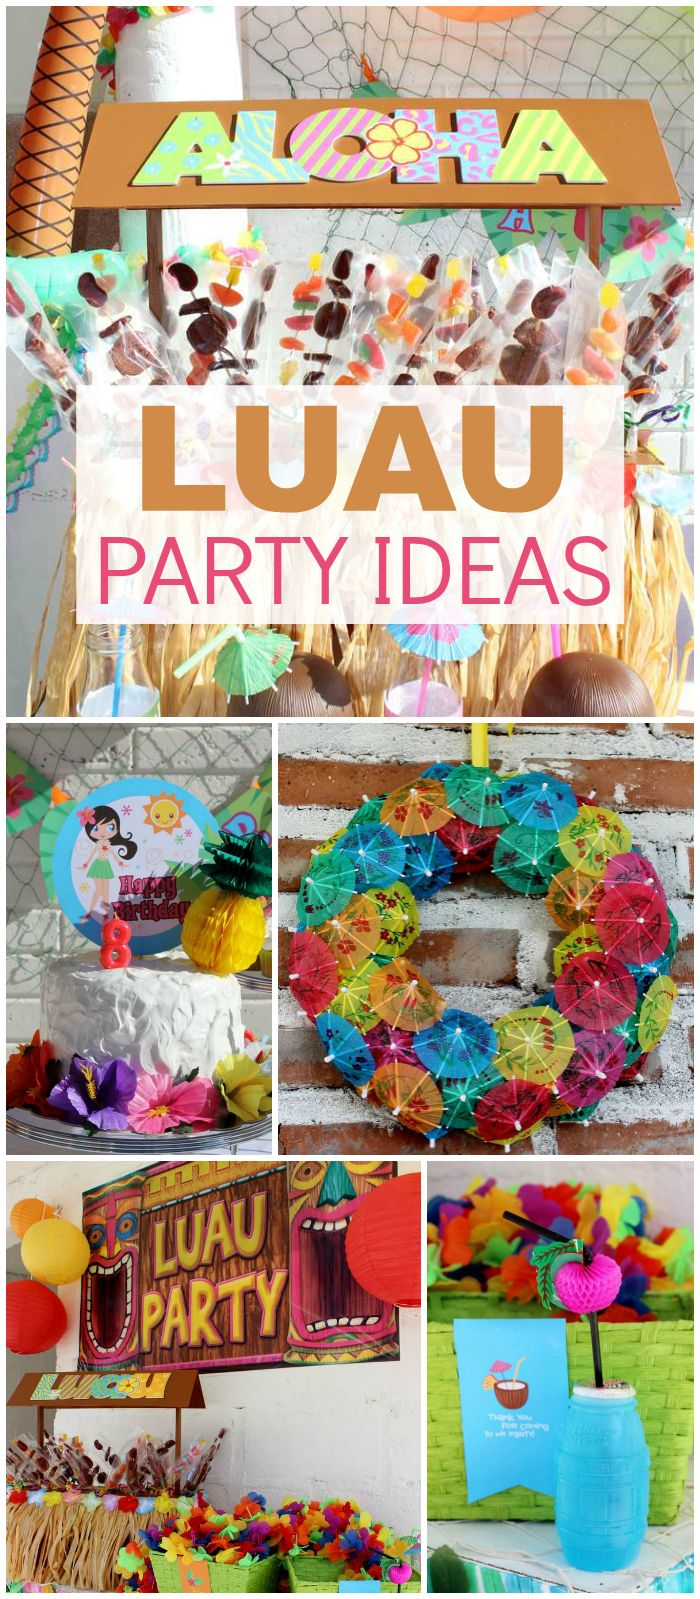 AD-Unique-Party-Themes-09